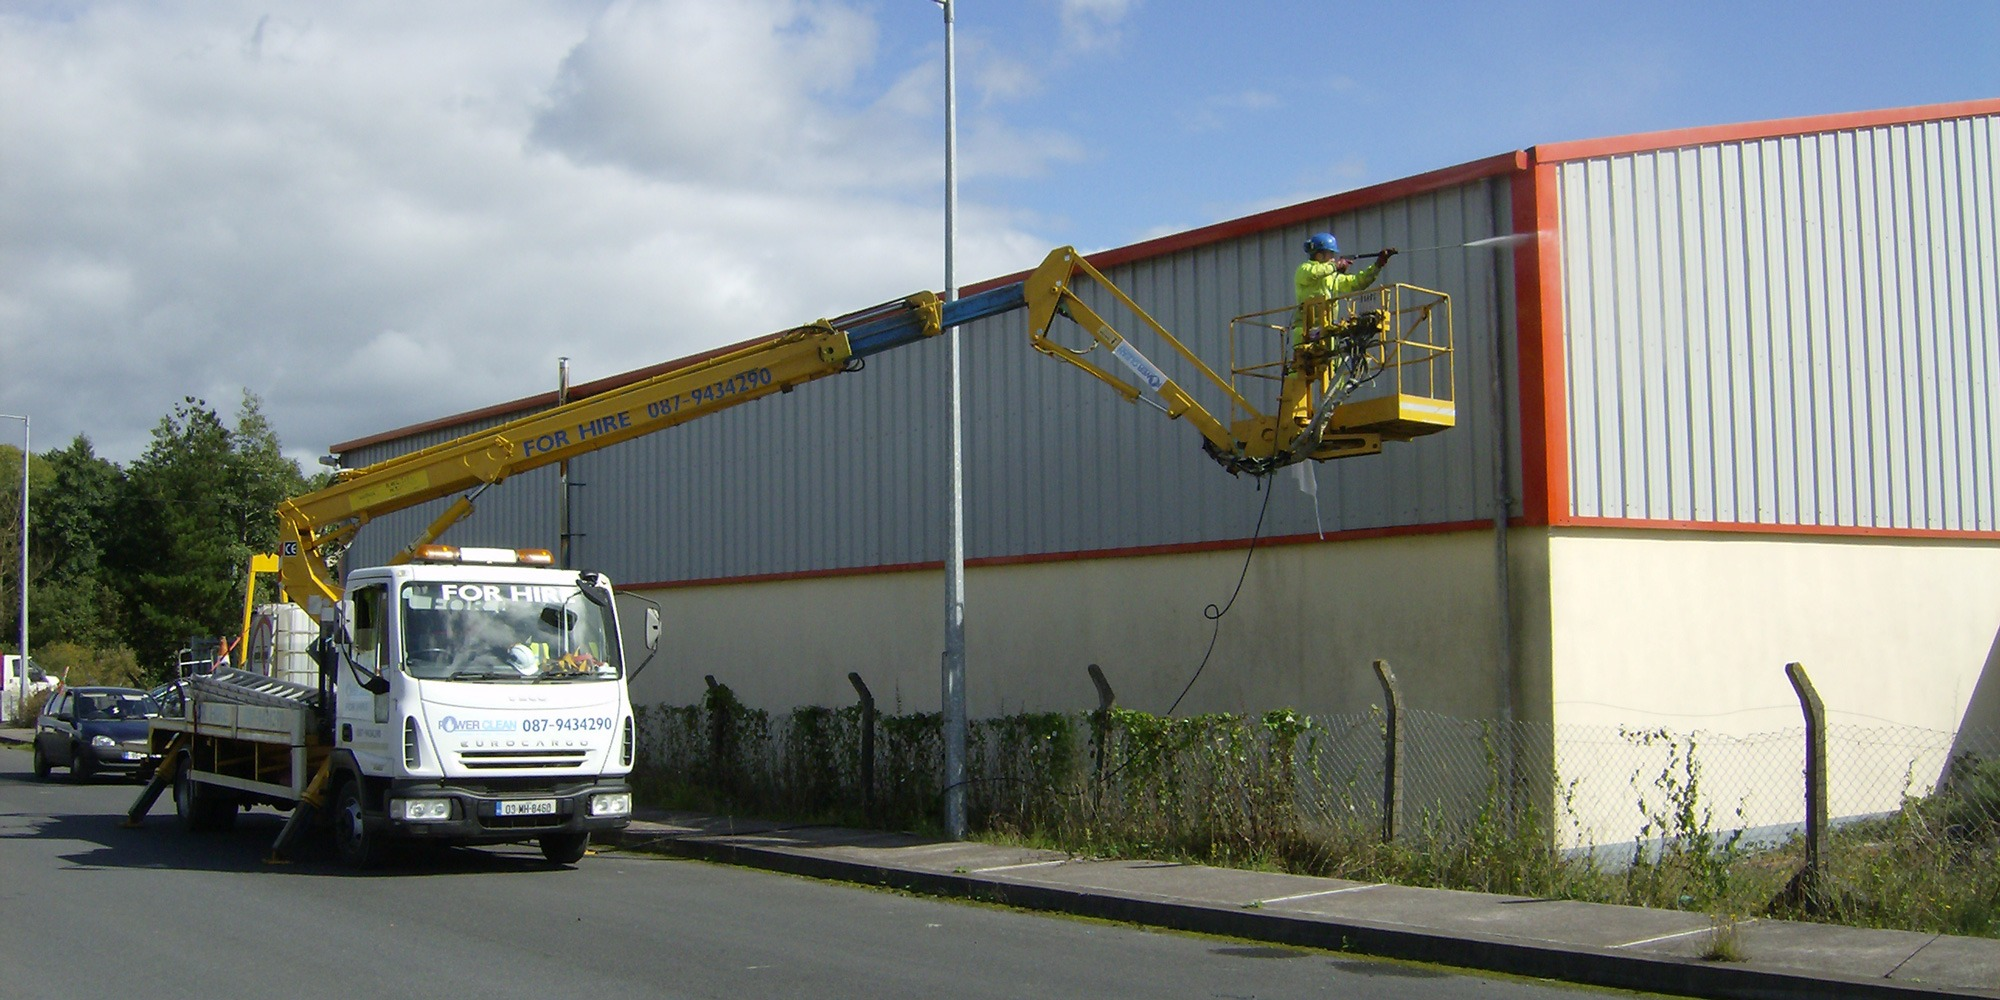 External-cleaning-contractors-for-commercial-buildings-Mayo,-Galway,-Sligo,-Roscommon